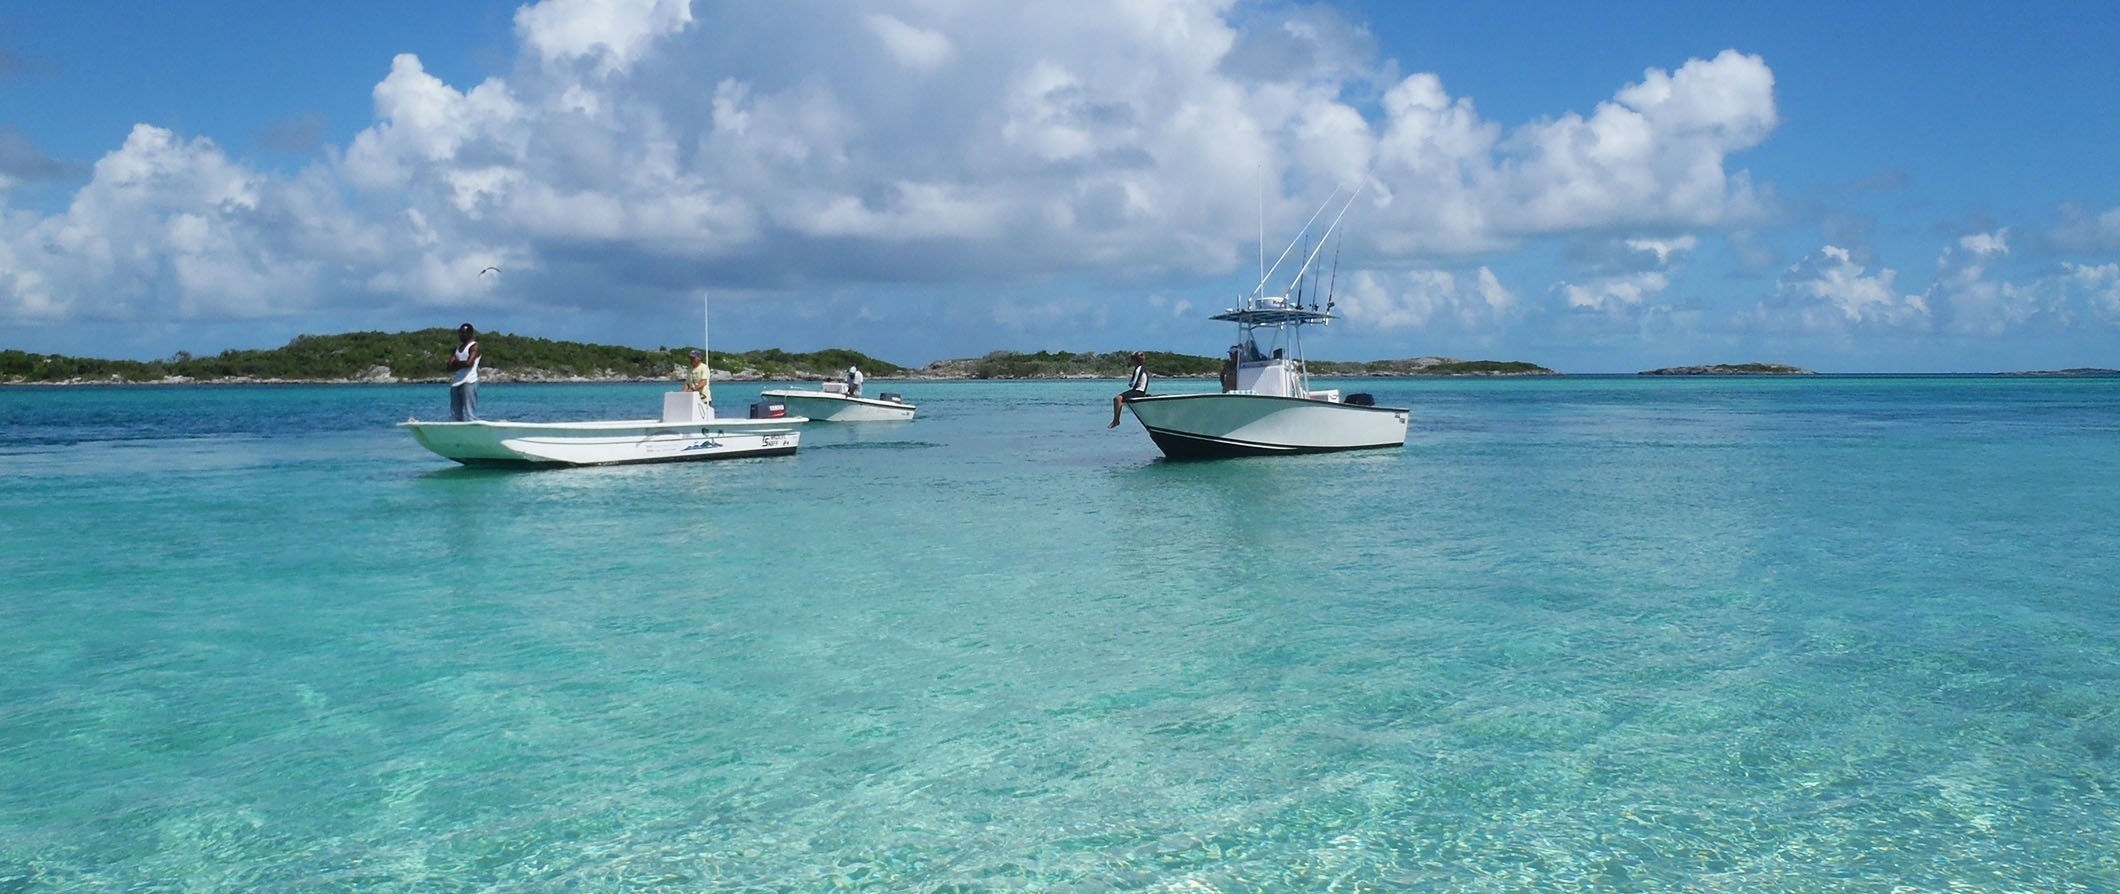 Backpacking & Budget Guide For The Bahamas (Updated 2019) inside Travel To Bahamas Safety